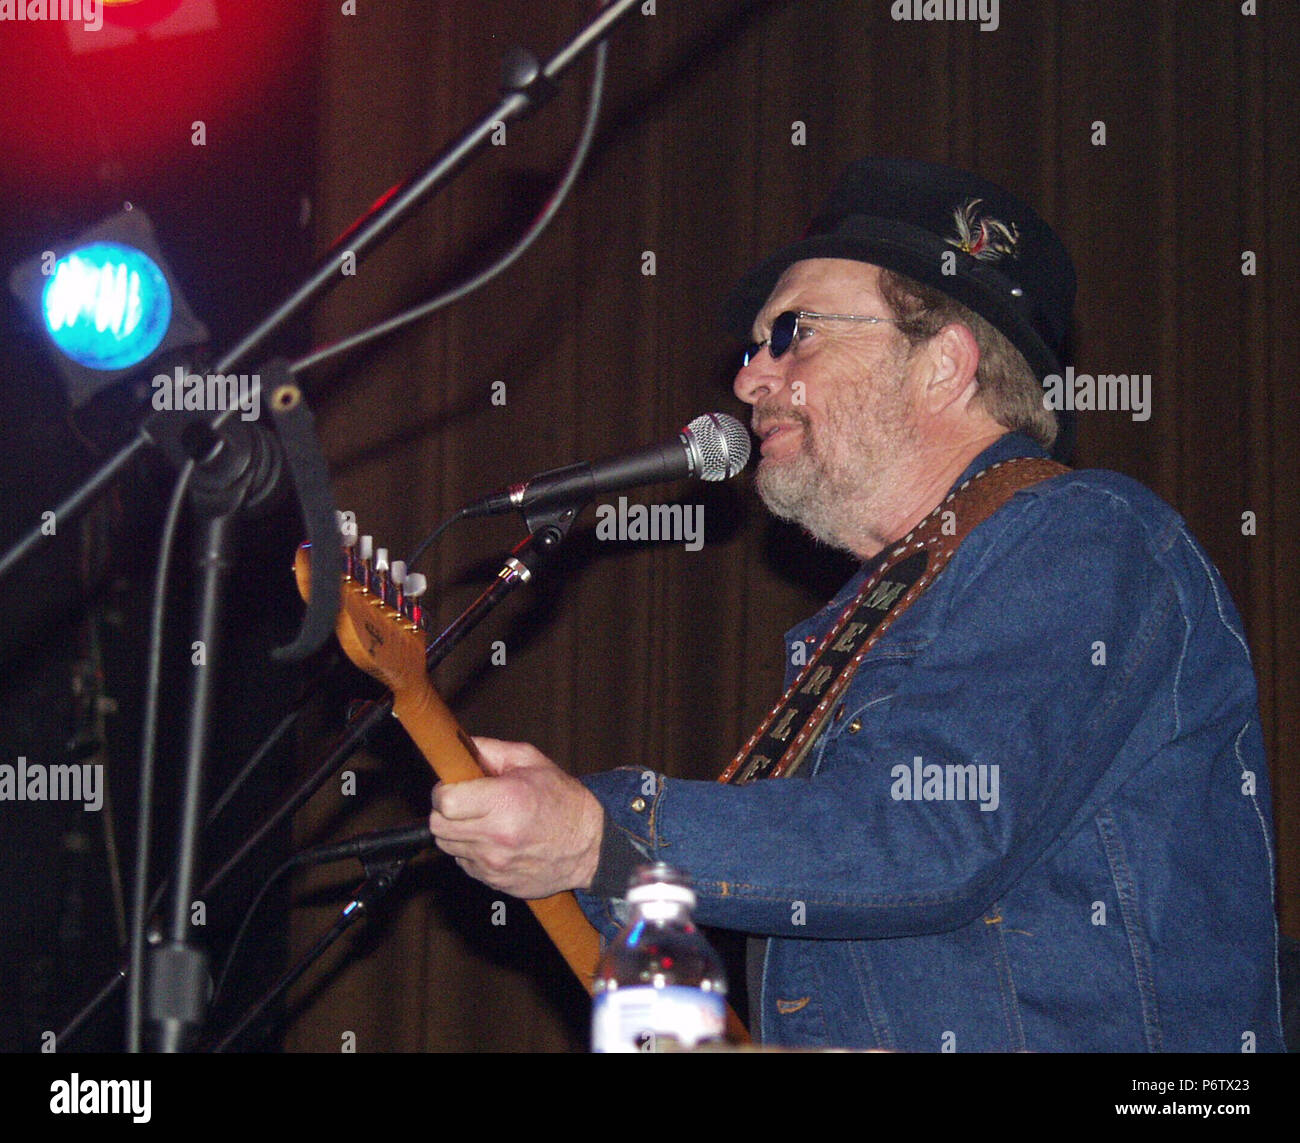 ATHENS, GA - February 13: *EXCLUSIVE* Country music legend Merle Haggard performs at the Georgia Theatre in Athens, Georgia on February 13, 2002. CREDIT: Chris McKay / MediaPunch - Stock Image